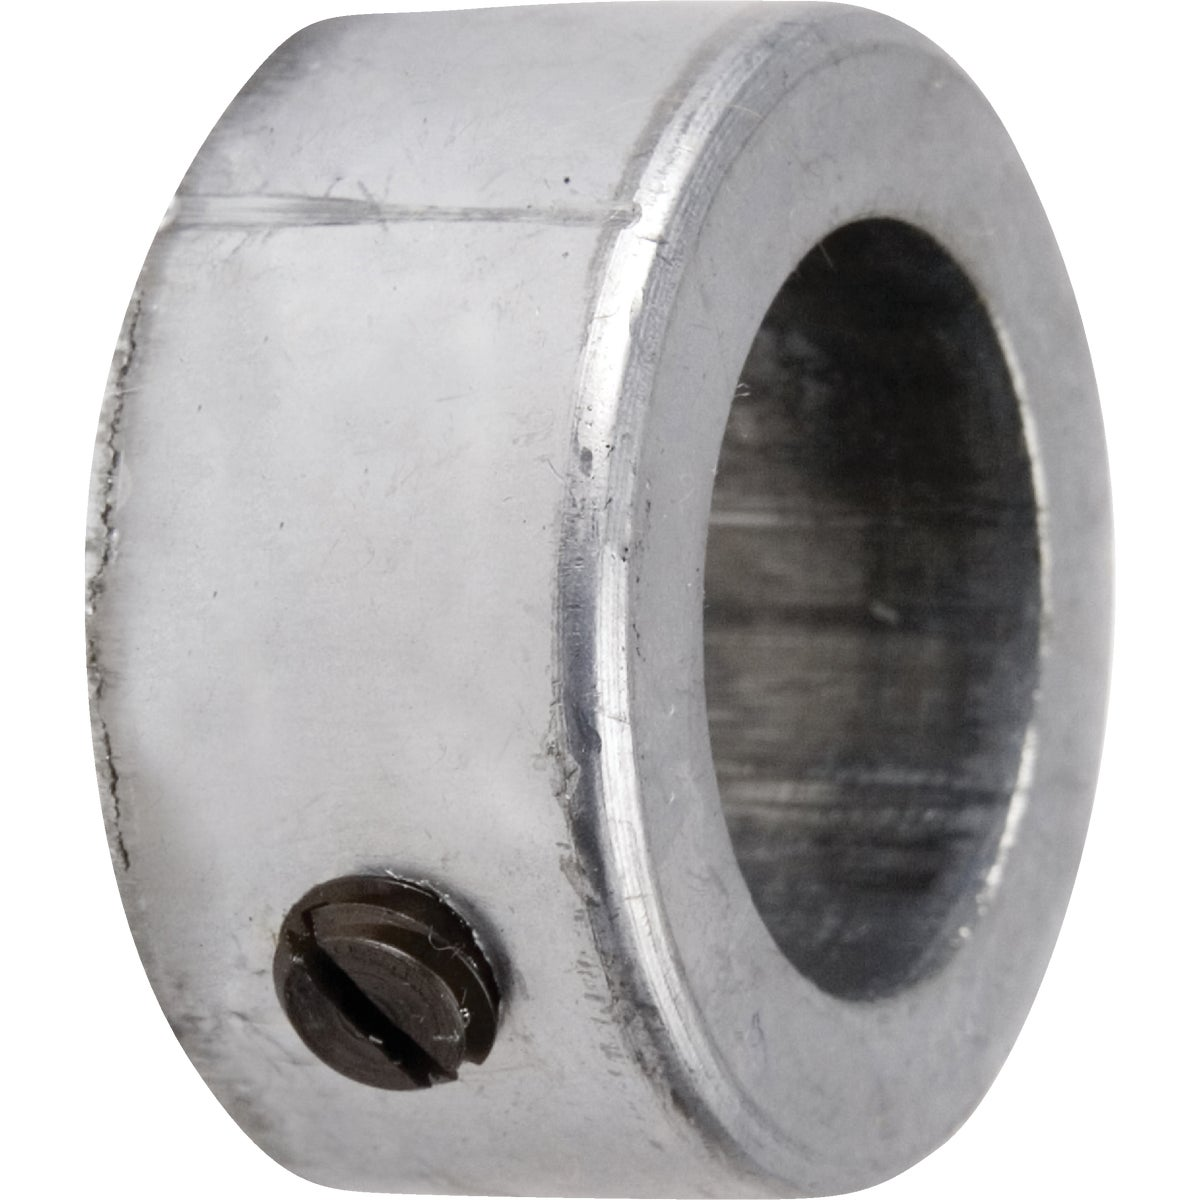 "5/8"" SHAFT COLLAR - 3010 by Chicago Die Casting"